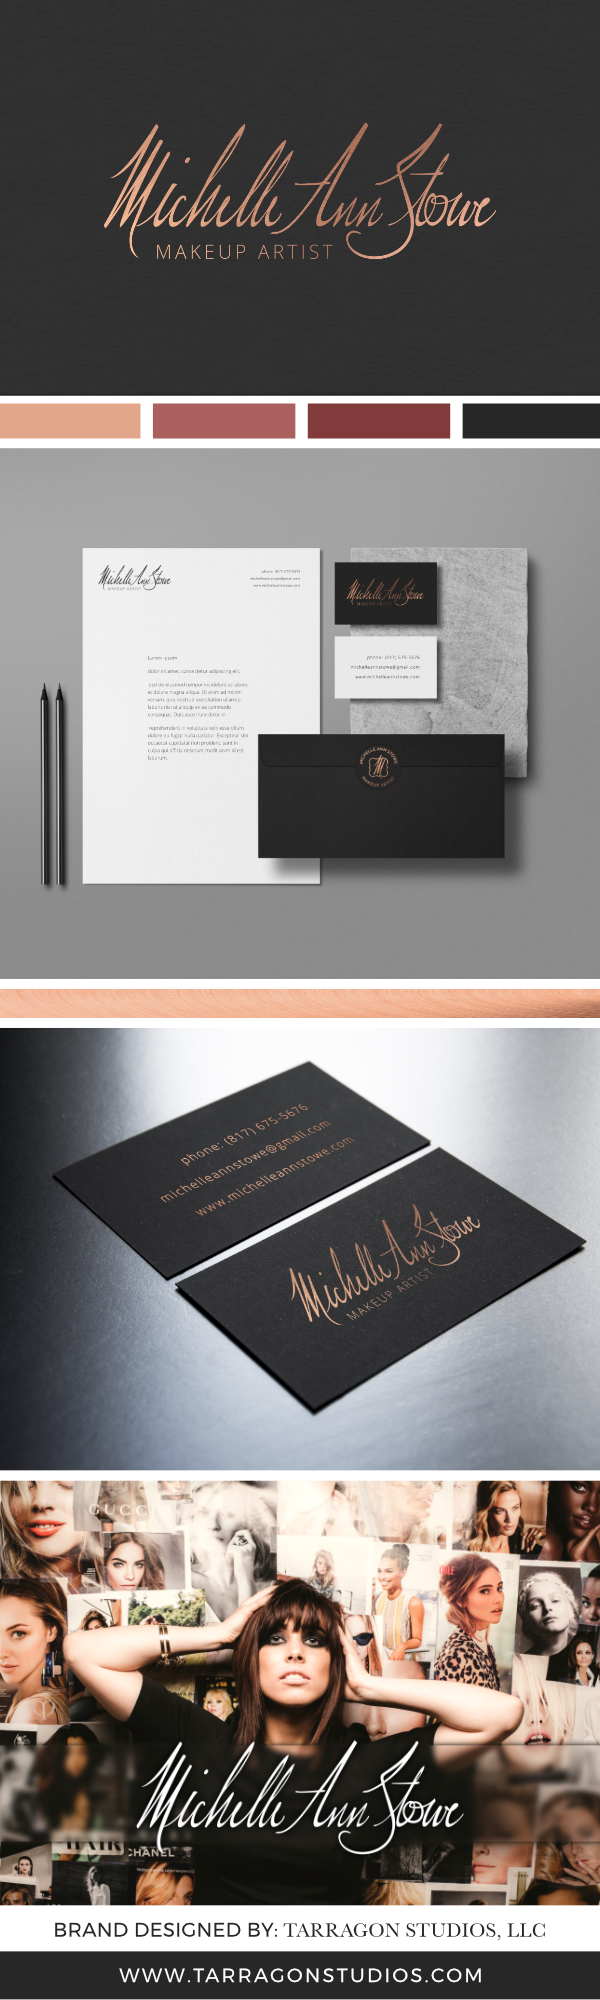 Makeup Artist Brand Design. Rose Gold, Black Paper, Chic and Feminine Makeup Artist Logo and brand. #logo #branding #website #design #makeup #signature